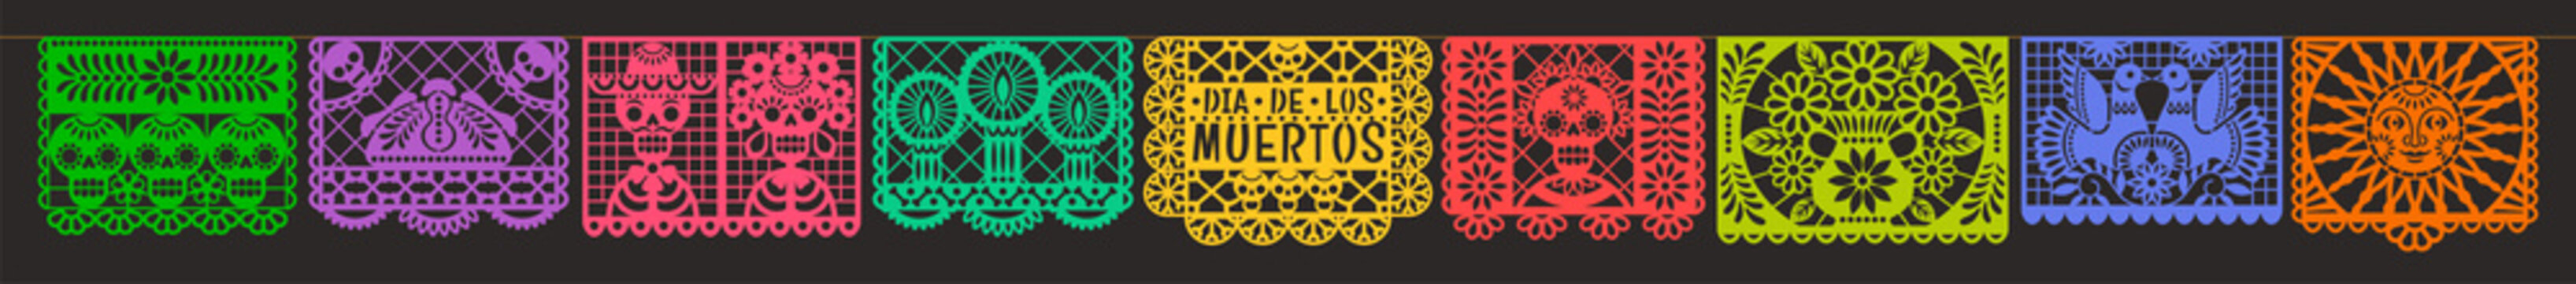 Day of the Dead. Dia de los muetros. Papel Picado. Vector horizontal banner with traditional Mexican paper cutting flags. Isolated on black background